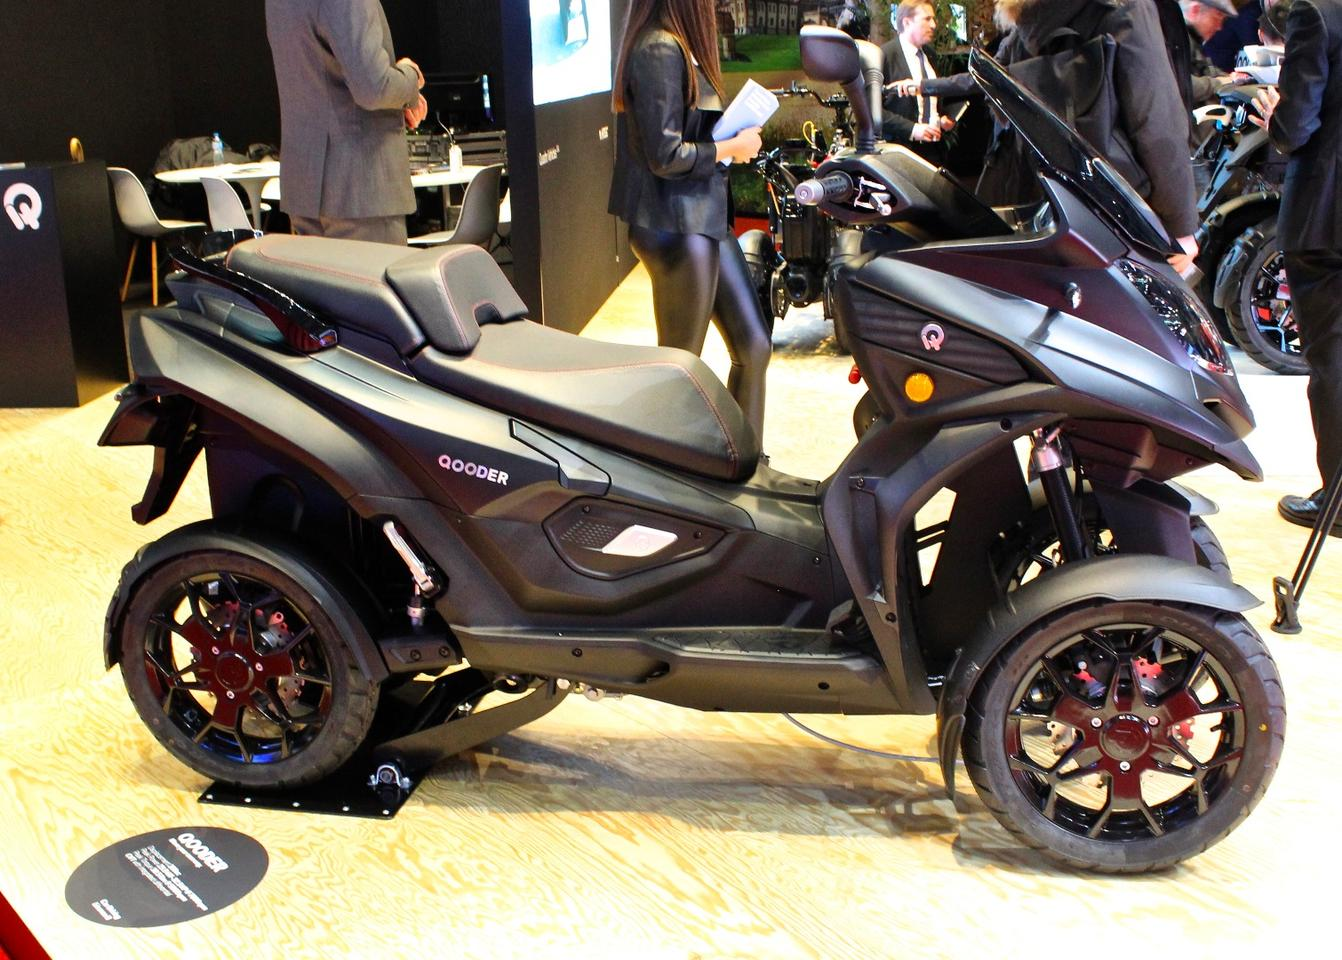 Quadro Qooder: on display at this year's Geneva Motor Show